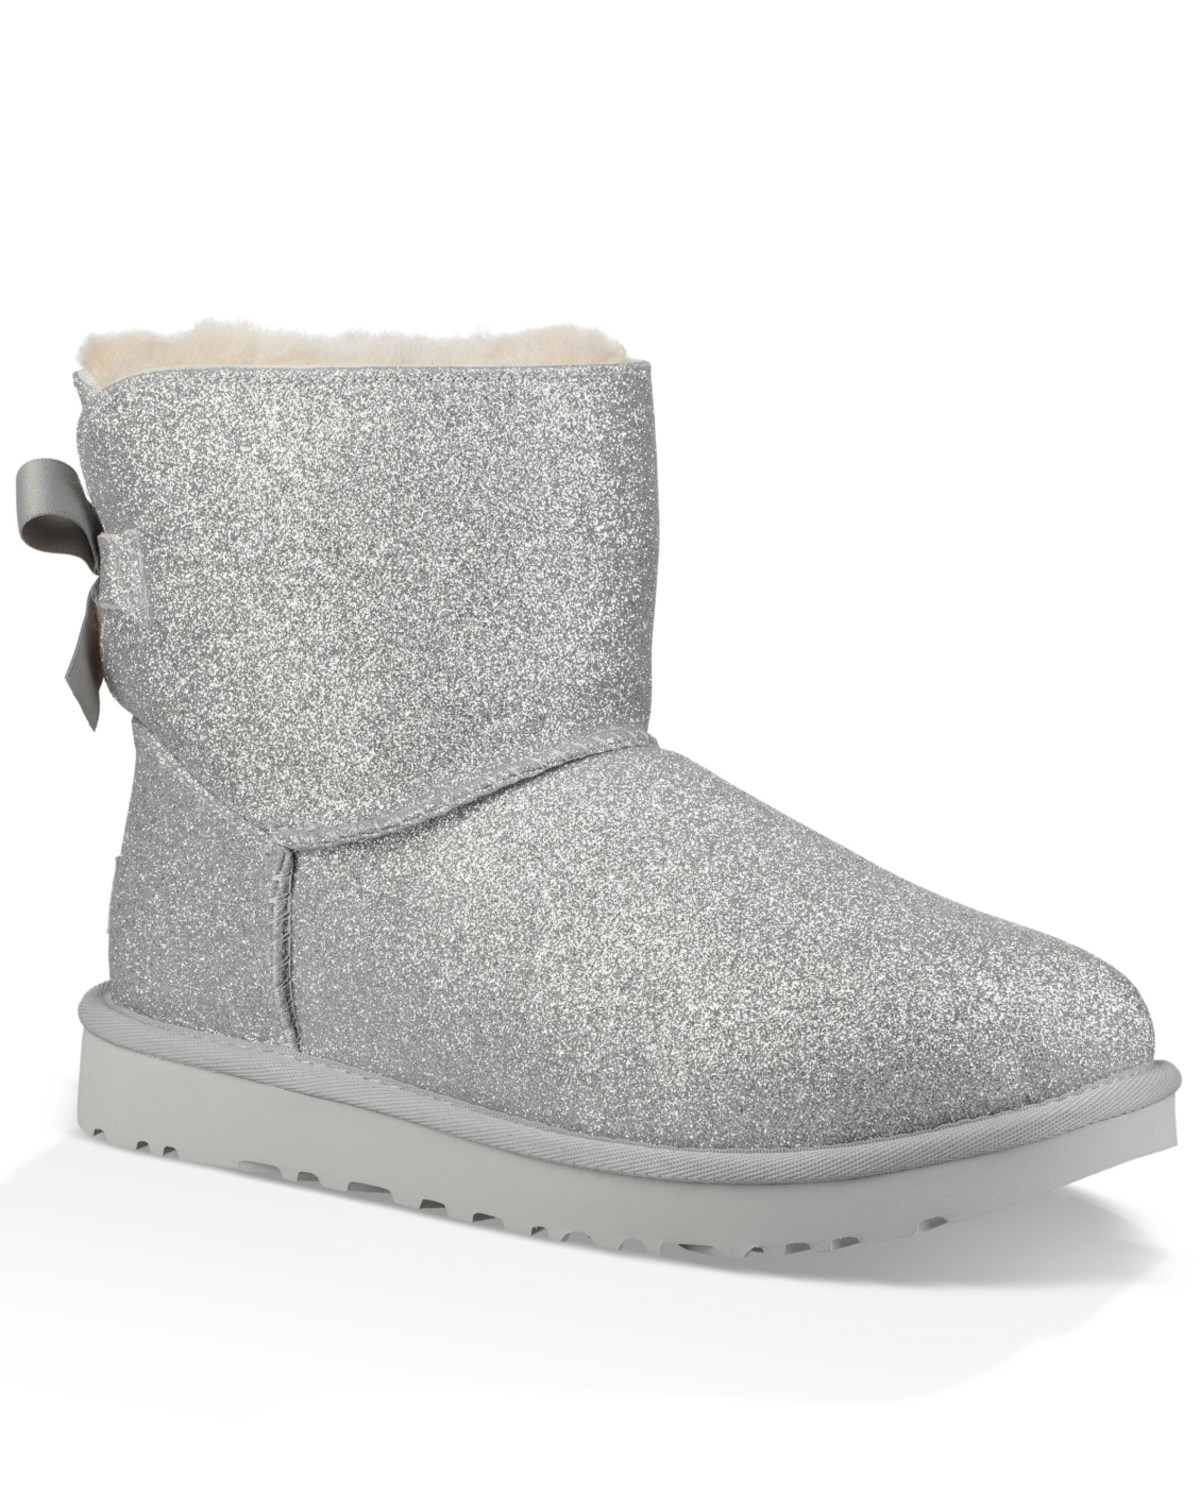 22613b6dd5e UGG Women's Silver Mini Bailey Bow Sparkle Boots - Round Toe